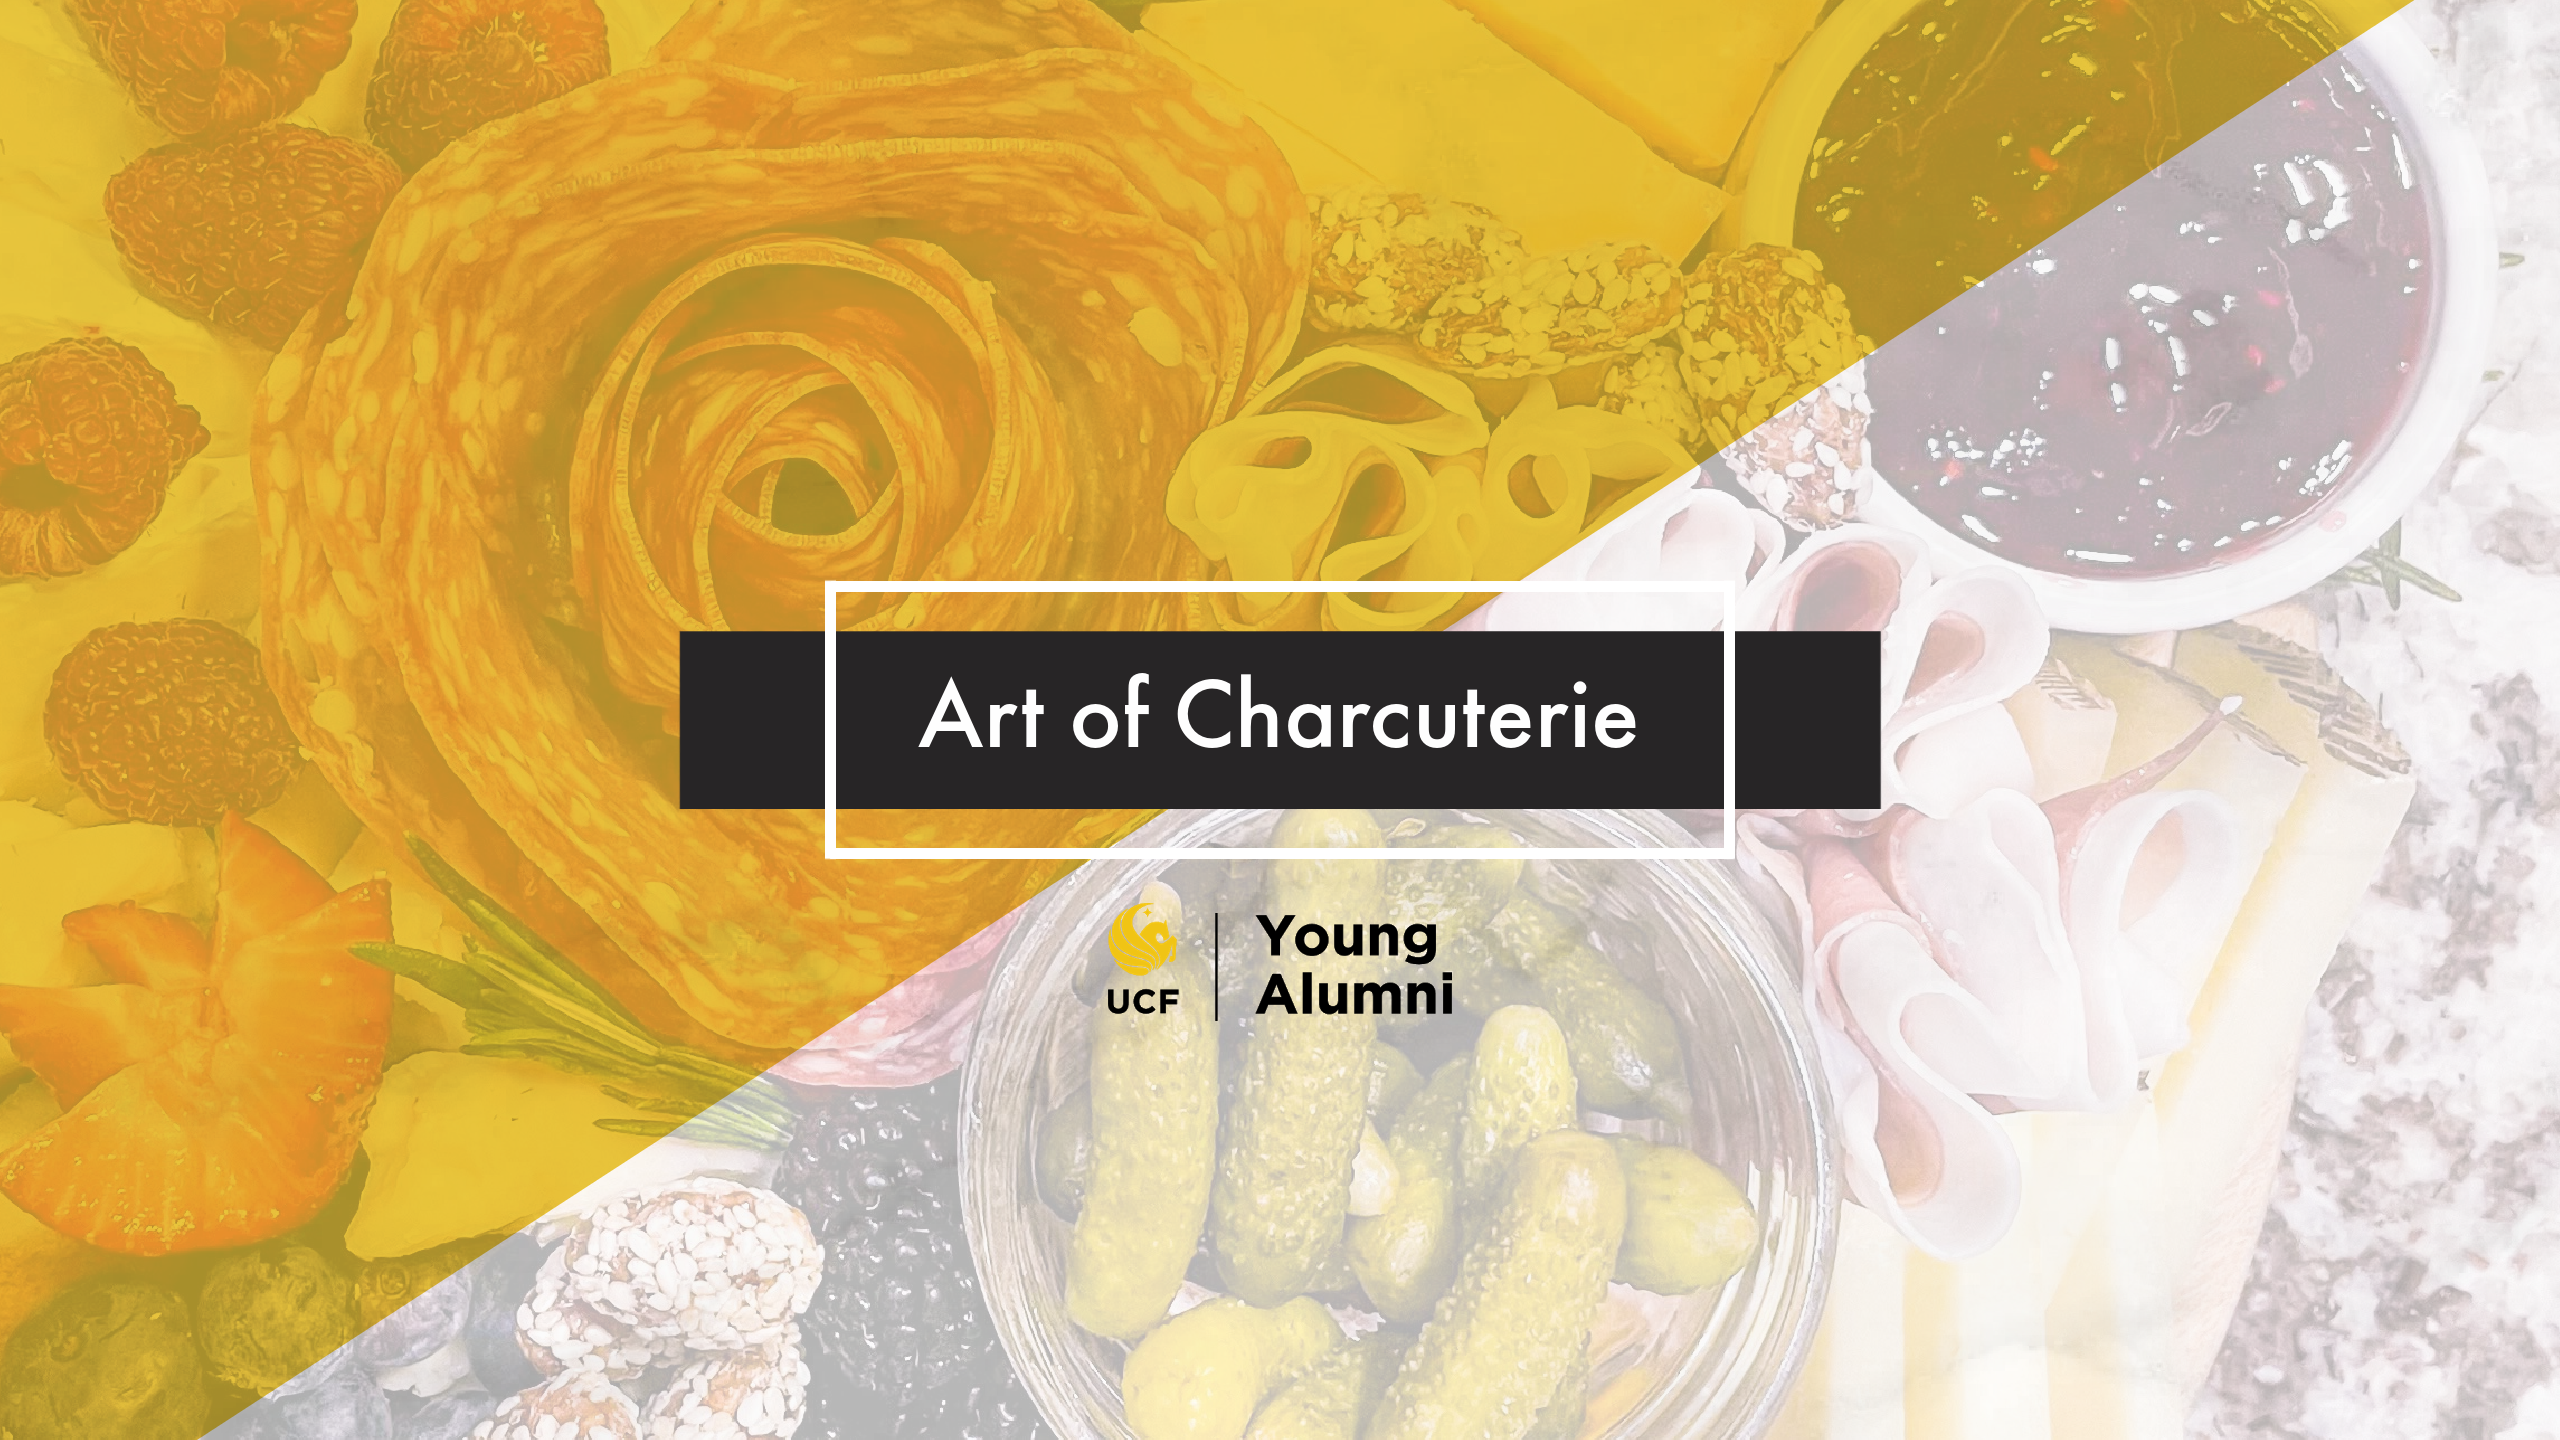 Image of meat and cheese board with text that reads: Art of Charcuterie